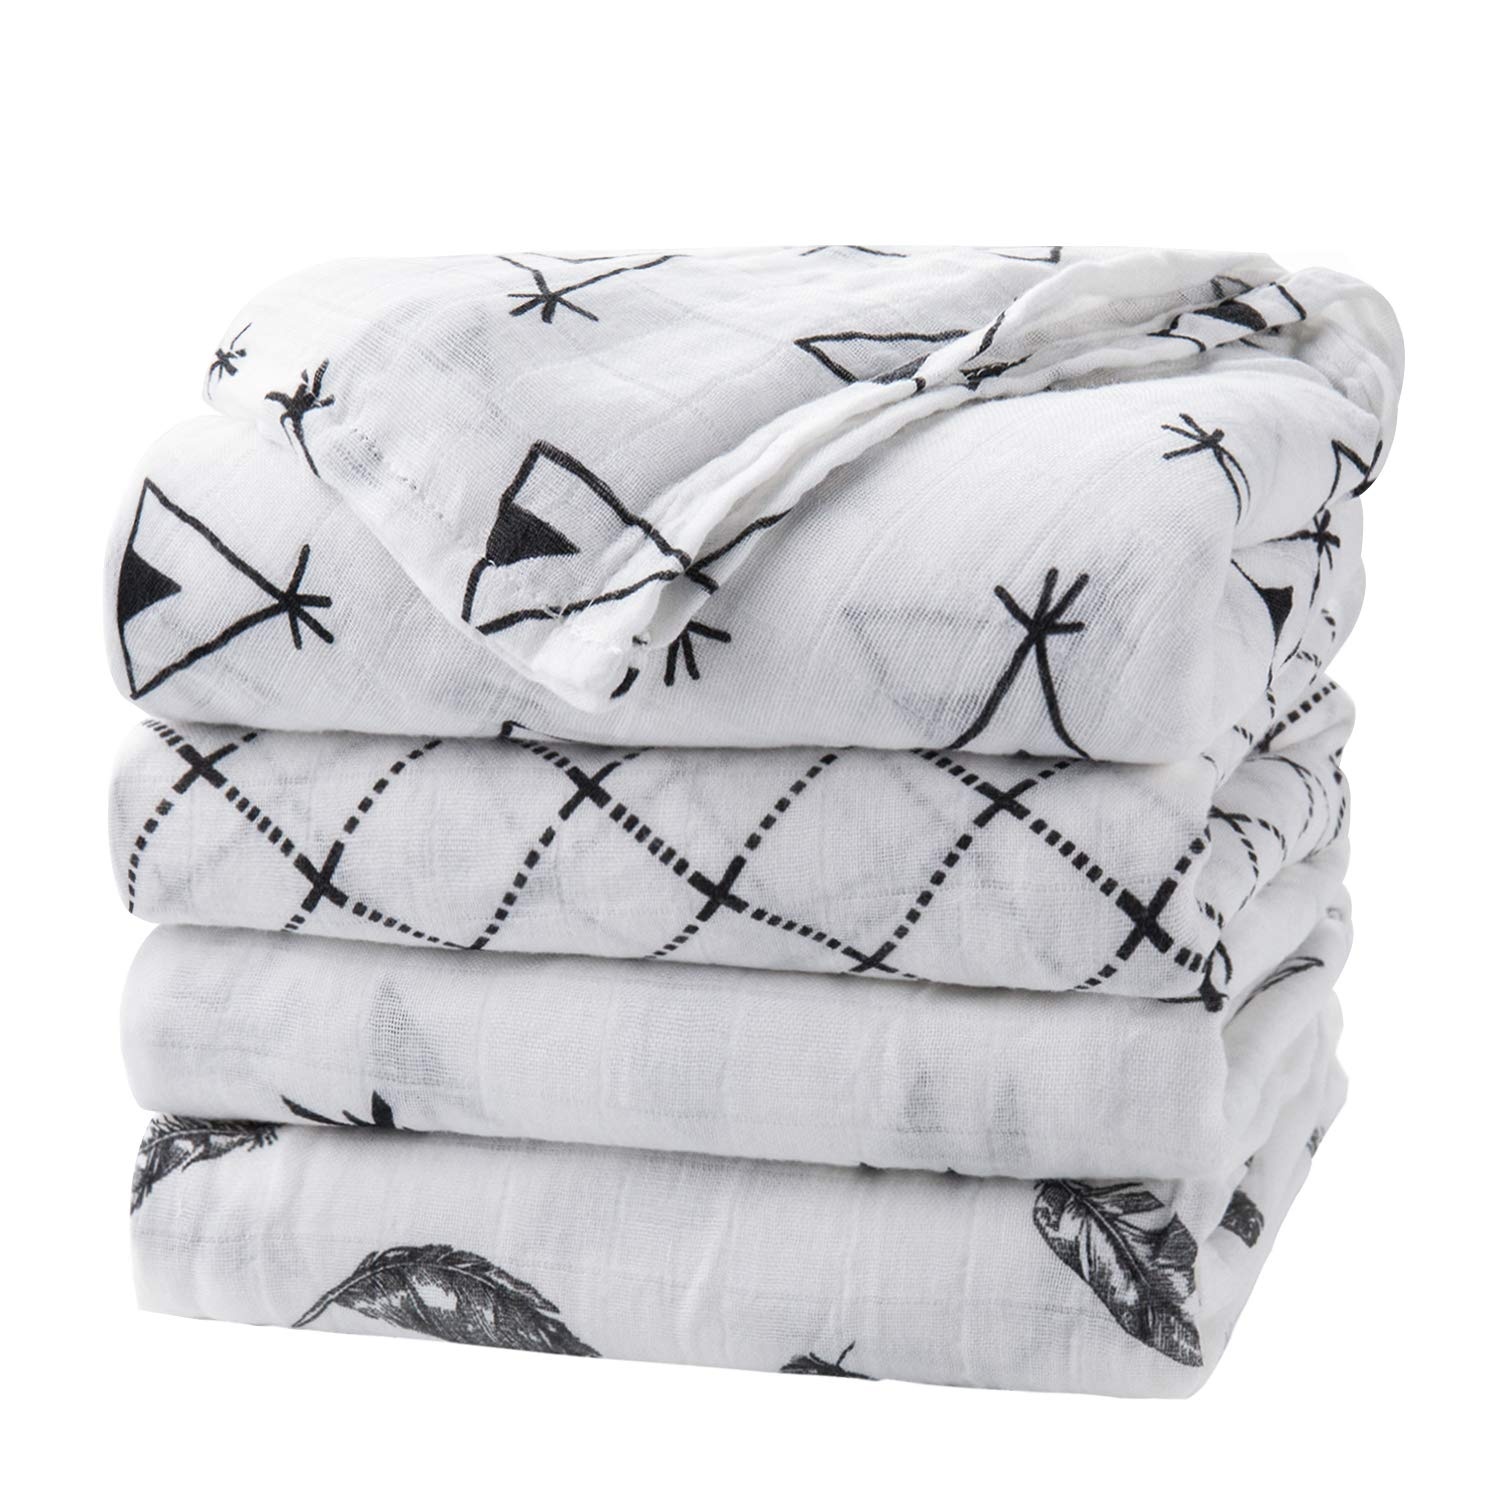 Baby Swaddle Blanket Upsimples Unisex Swaddle Wrap Soft Silky Bamboo Muslin Swaddle Blankets Neutral Receiving Blanket for Boys and Girls, Large 47 x 47 inches, Set of 4-Arrow/Feather/Tent/Crisscross by upsimples